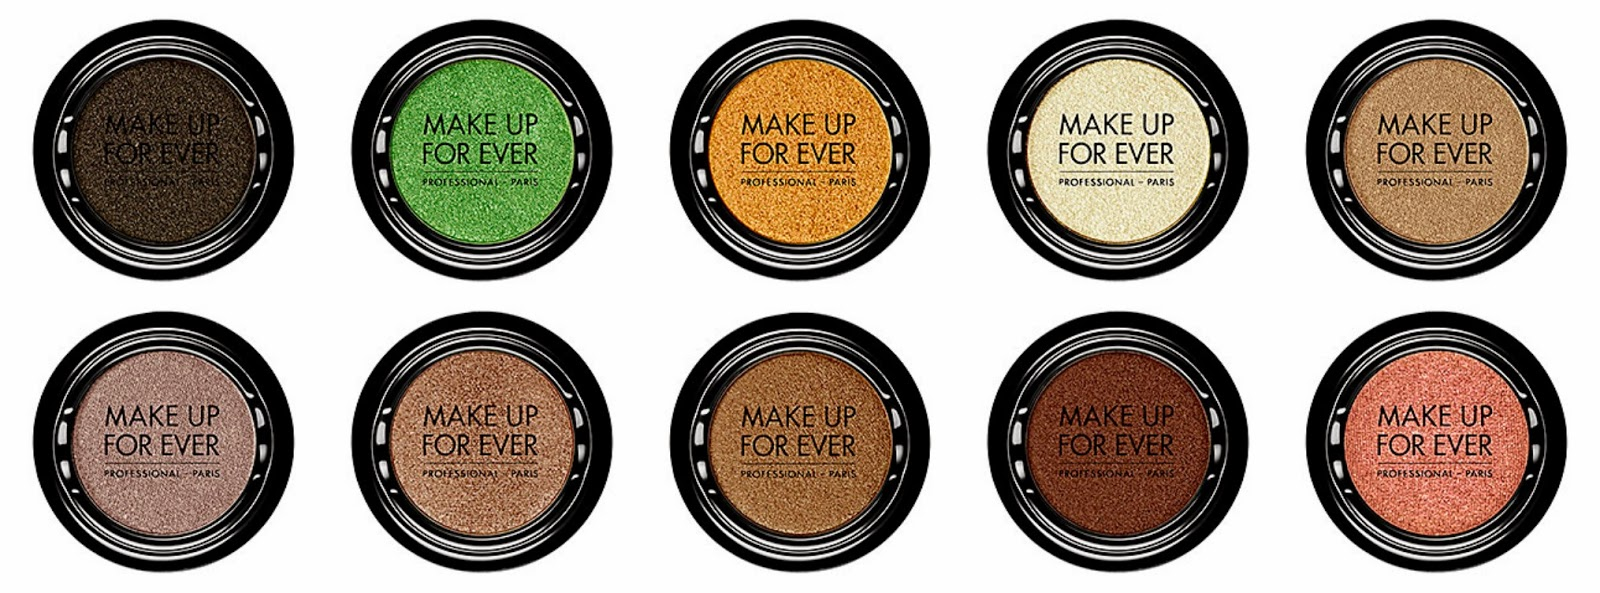 Make Up For Ever Artist Shadow Top from left: D326 Black Bronze; D334 Apple Green; D410 Gold Nugget; D416 Crystalline Yellow; D504 Celestial Beige  Bottom from left: D552 Crystalline Gray Beige; D562 Taupe Platinum; D640 Golden Snake; D652 Celestial Earth; D-708 Pinky Copper